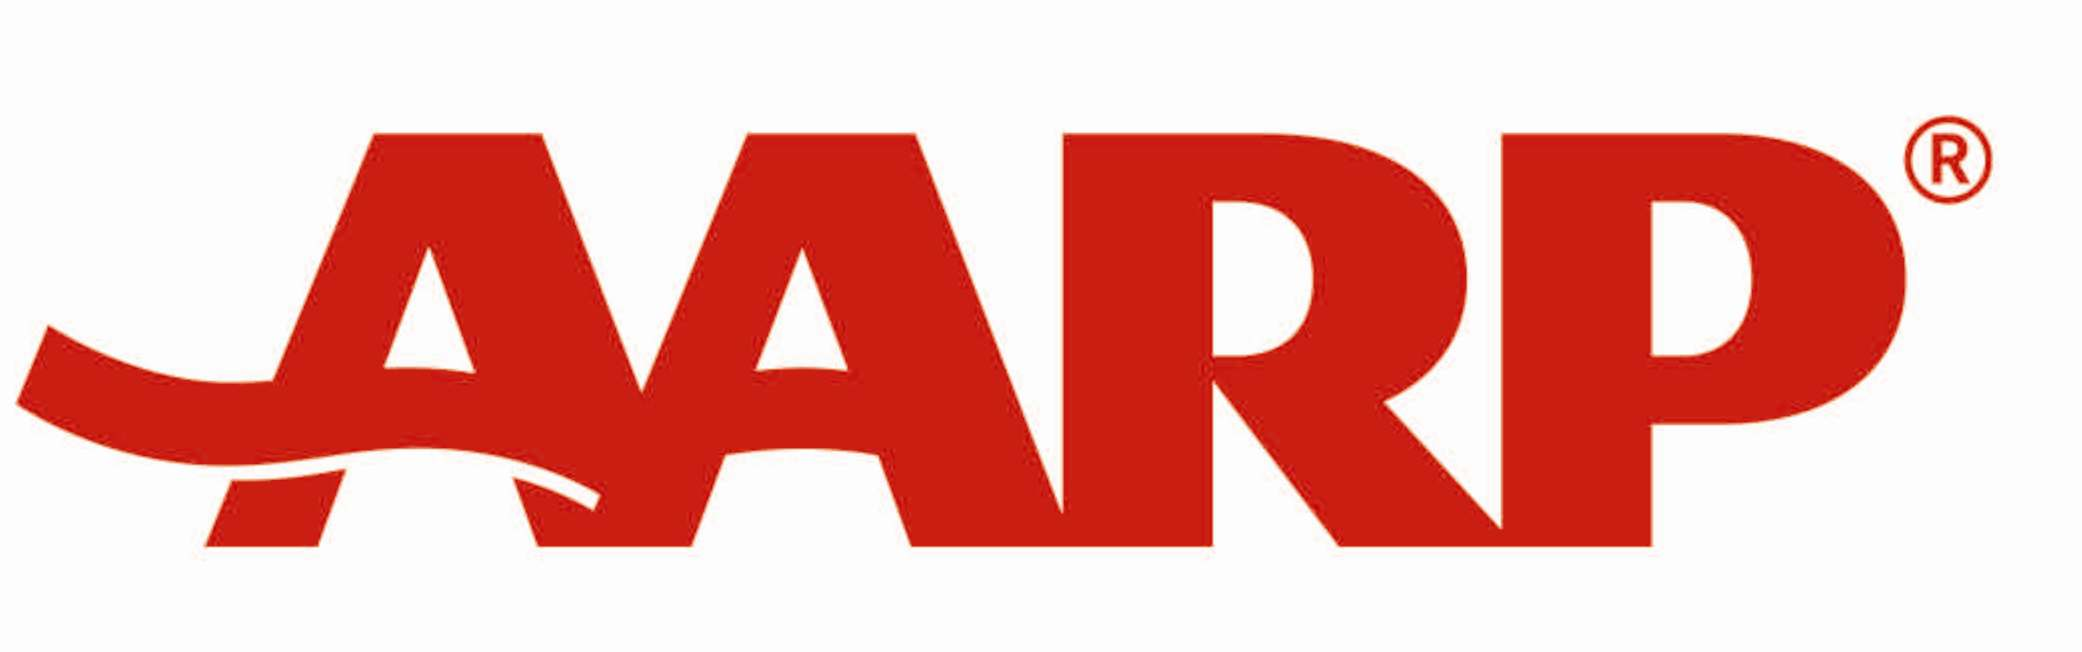 aarp logo vector png people magazine logo v 2082